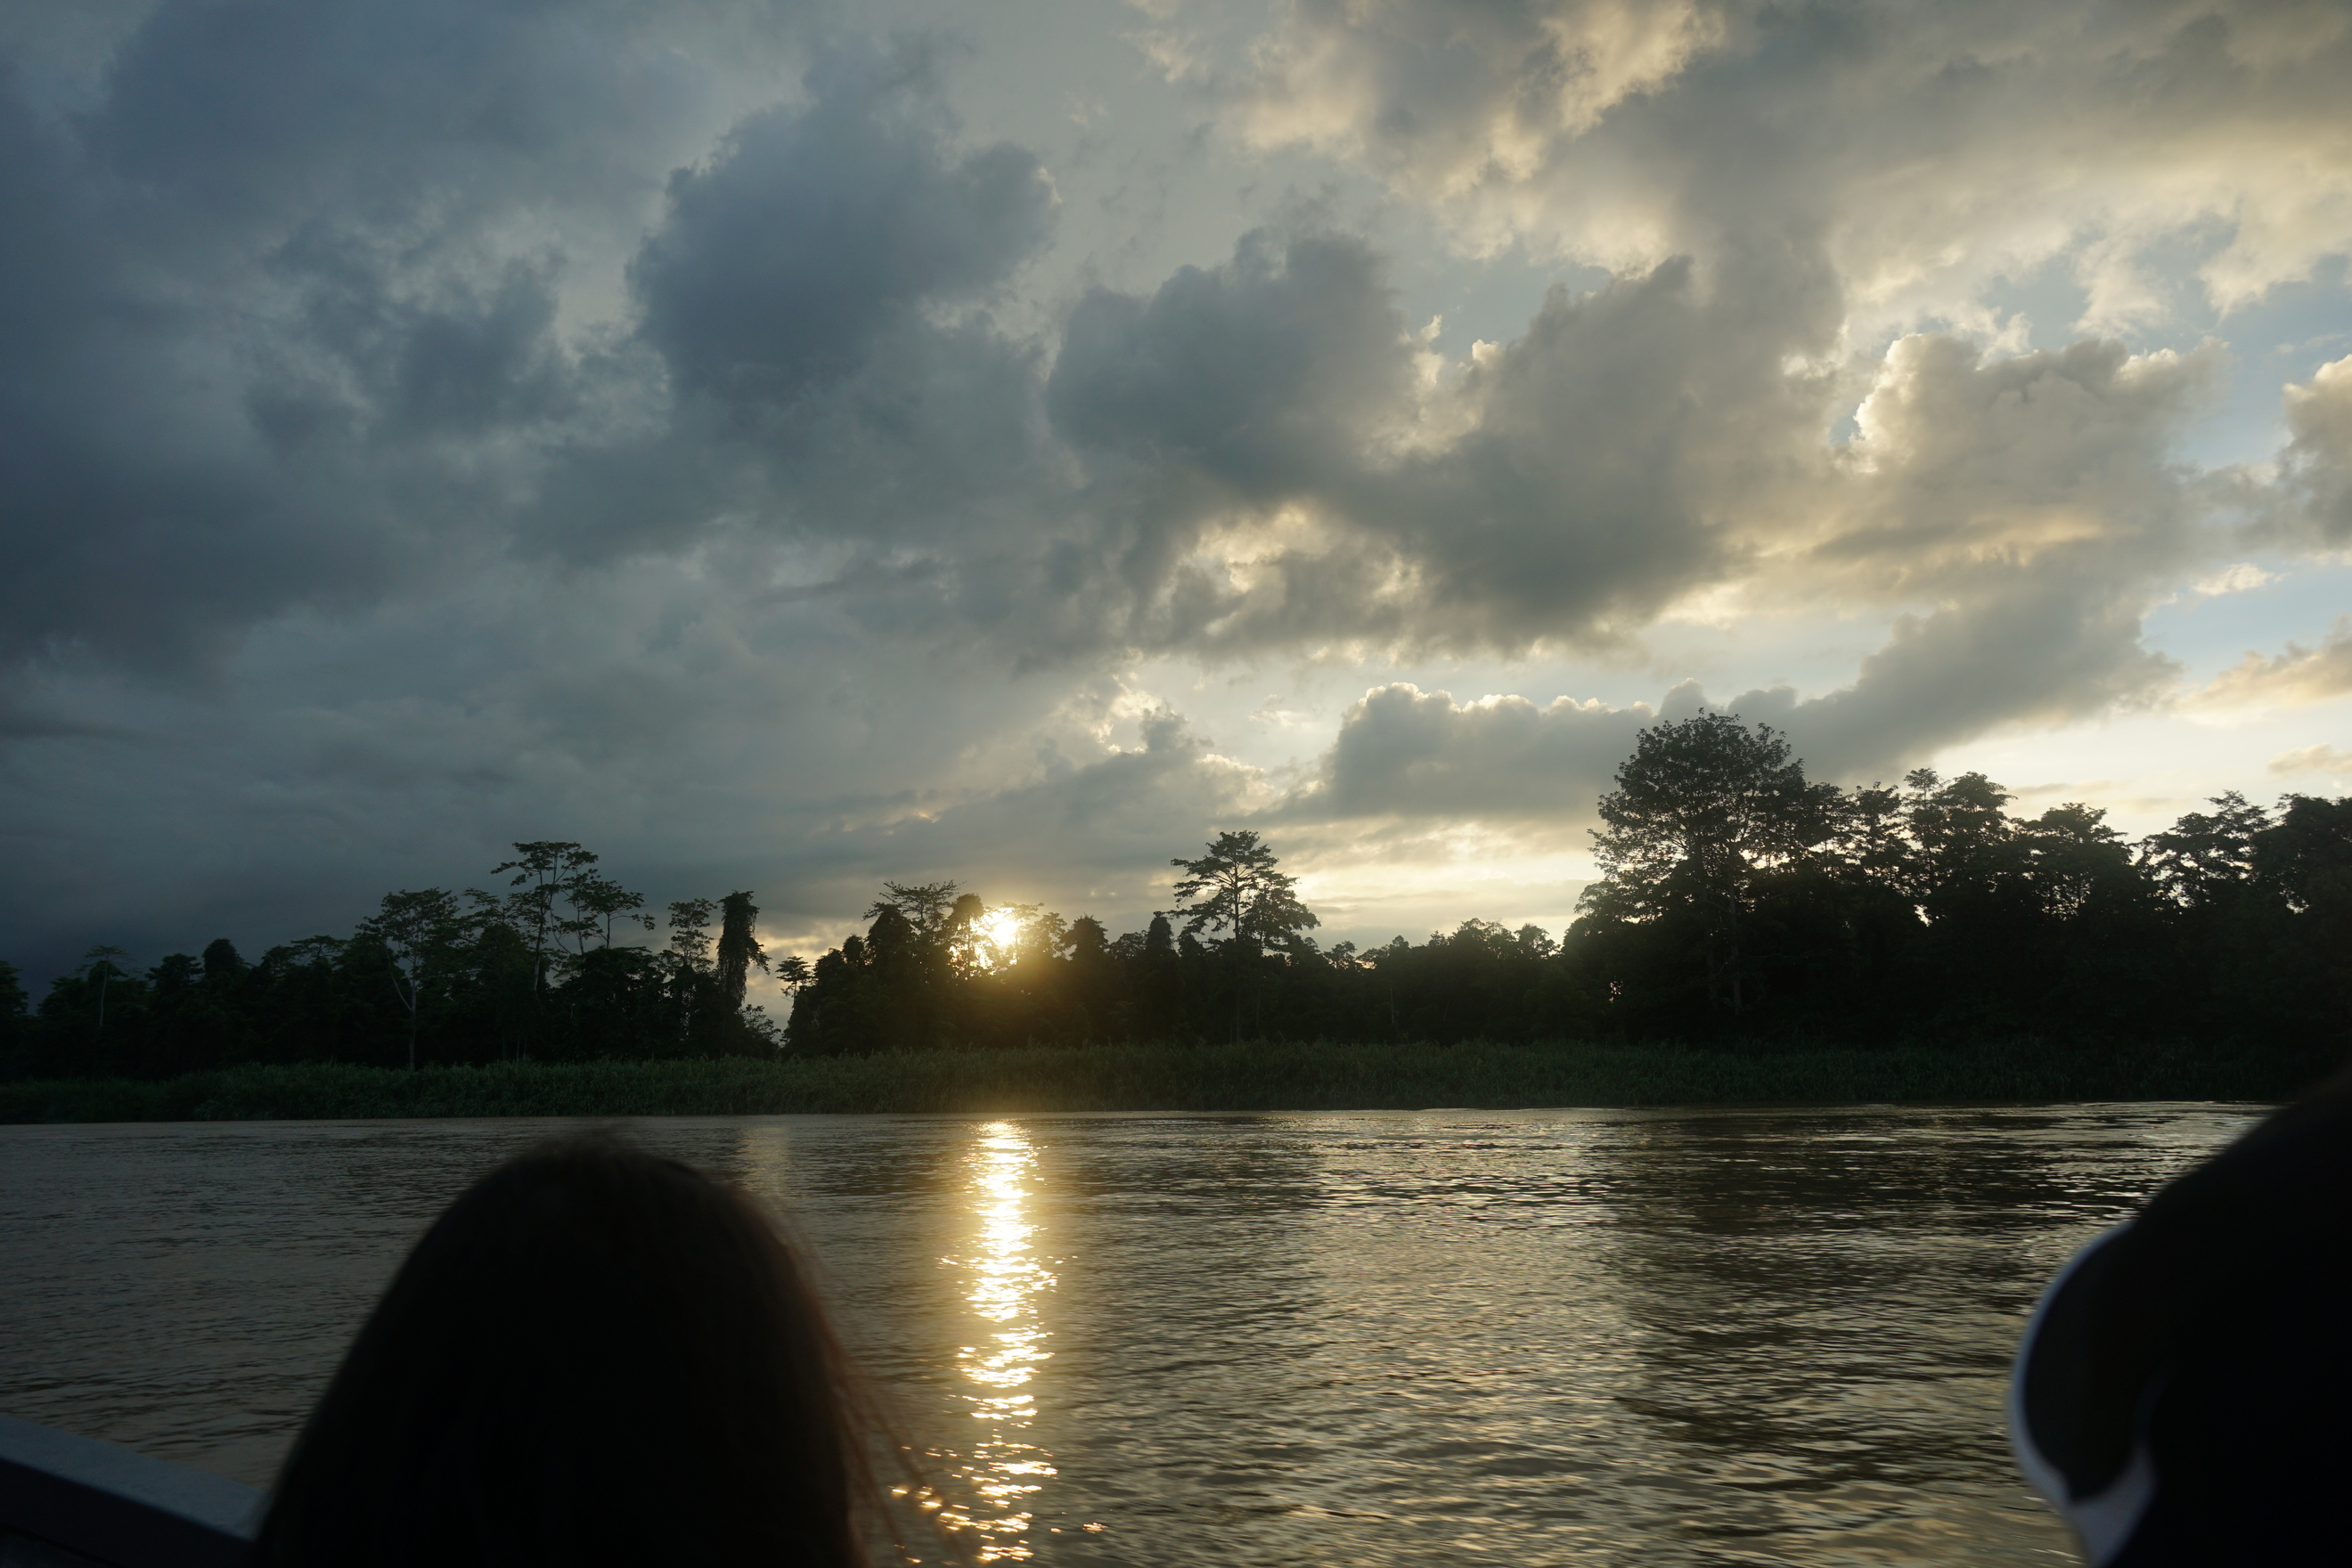 Wildlife Adventure of River Cruise in Kinabatangan River